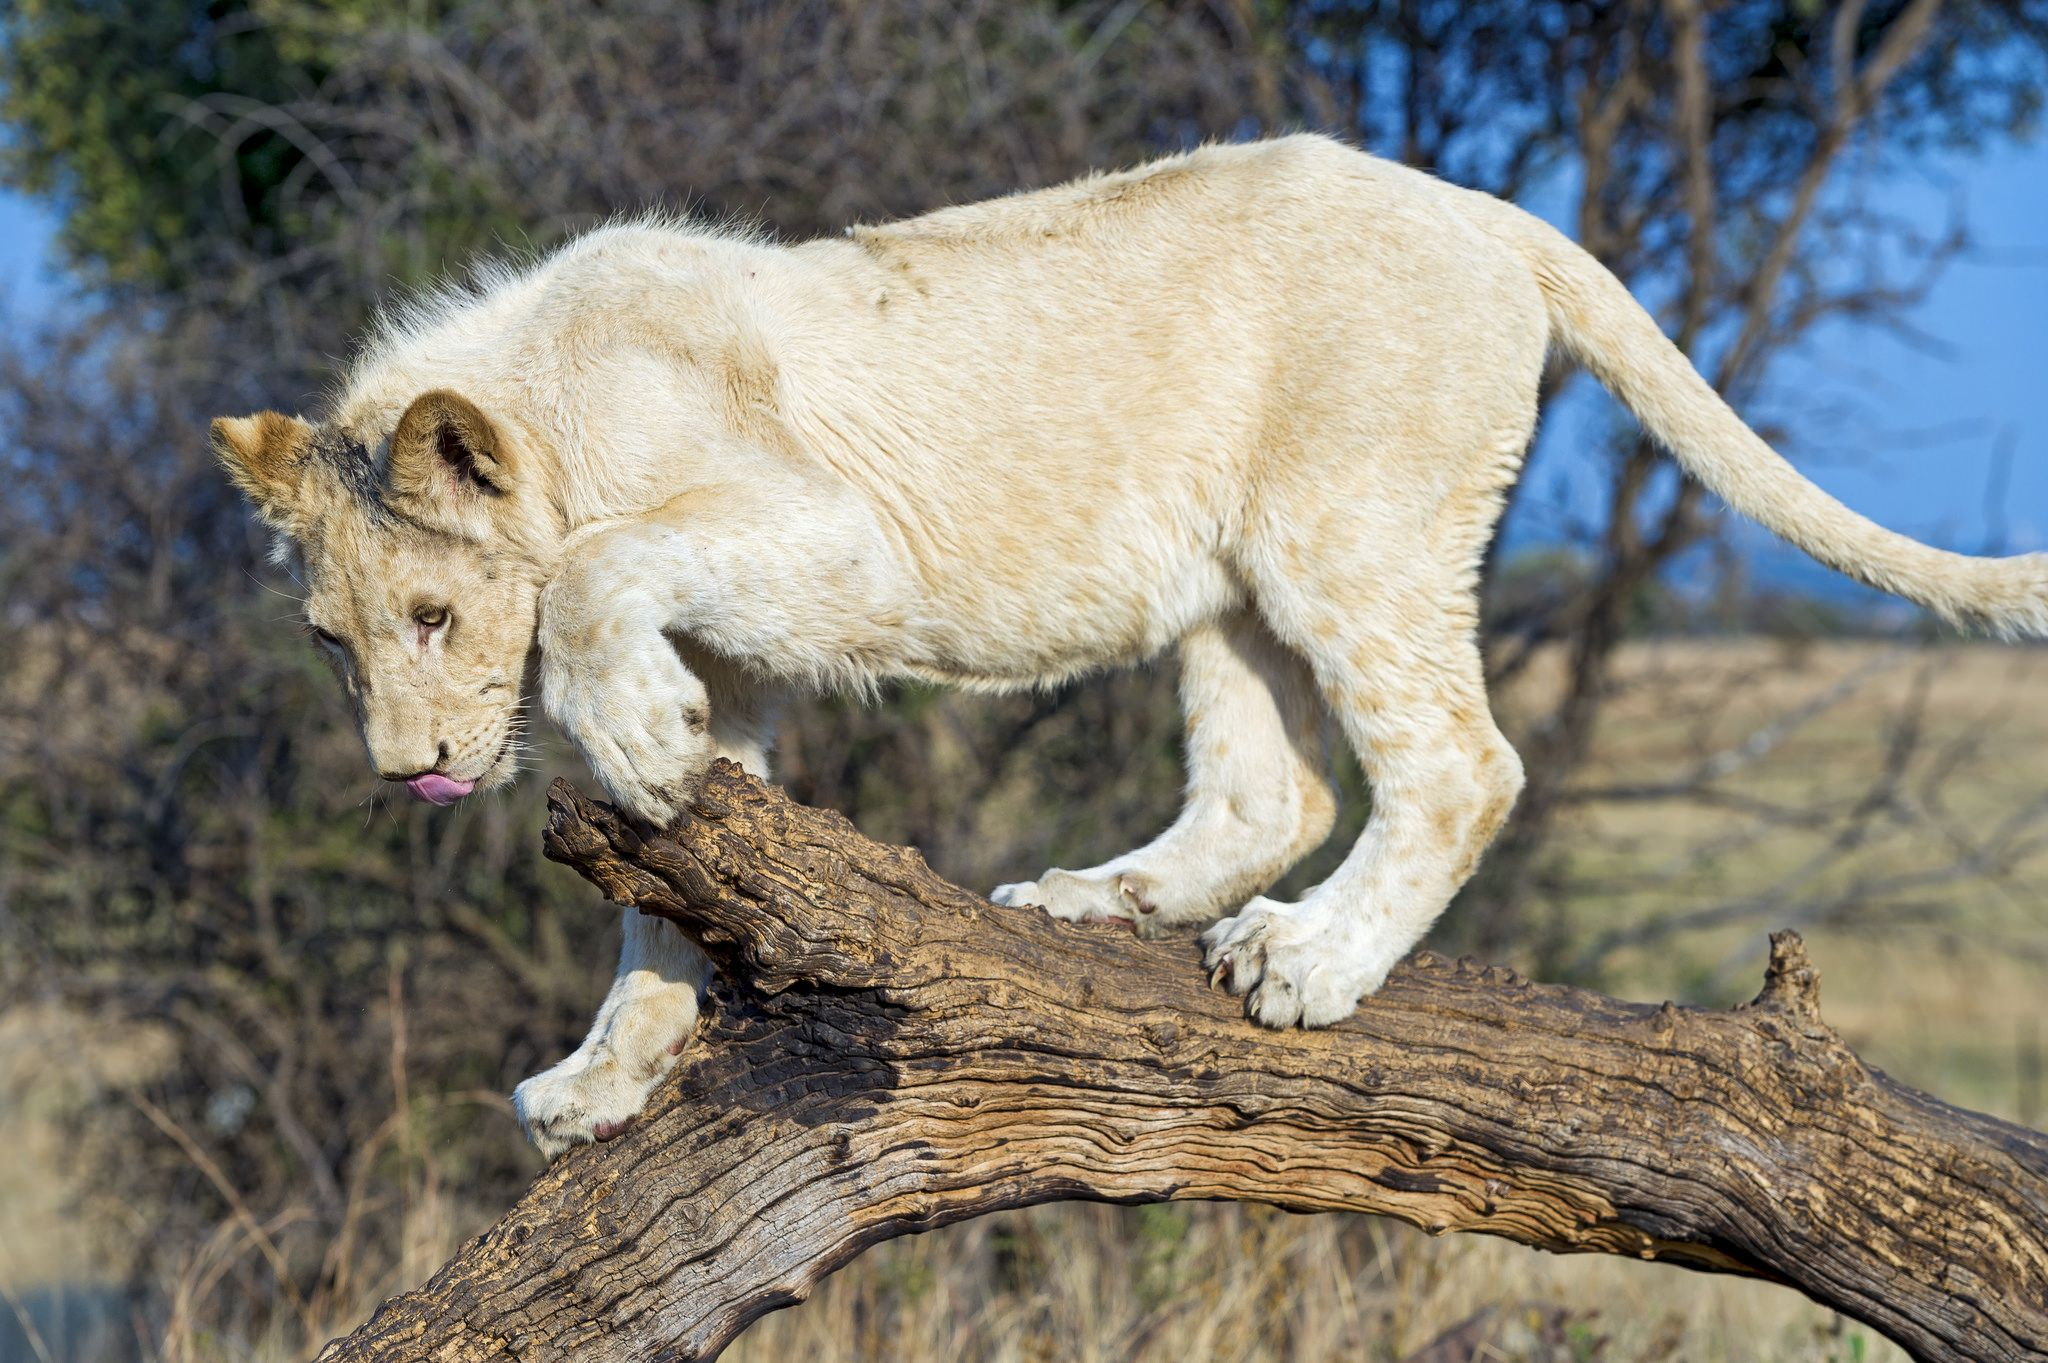 https://flic.kr/p/zMcbRx | Young white lion on the branch | He was walking on this branch... His name is Matsuso.